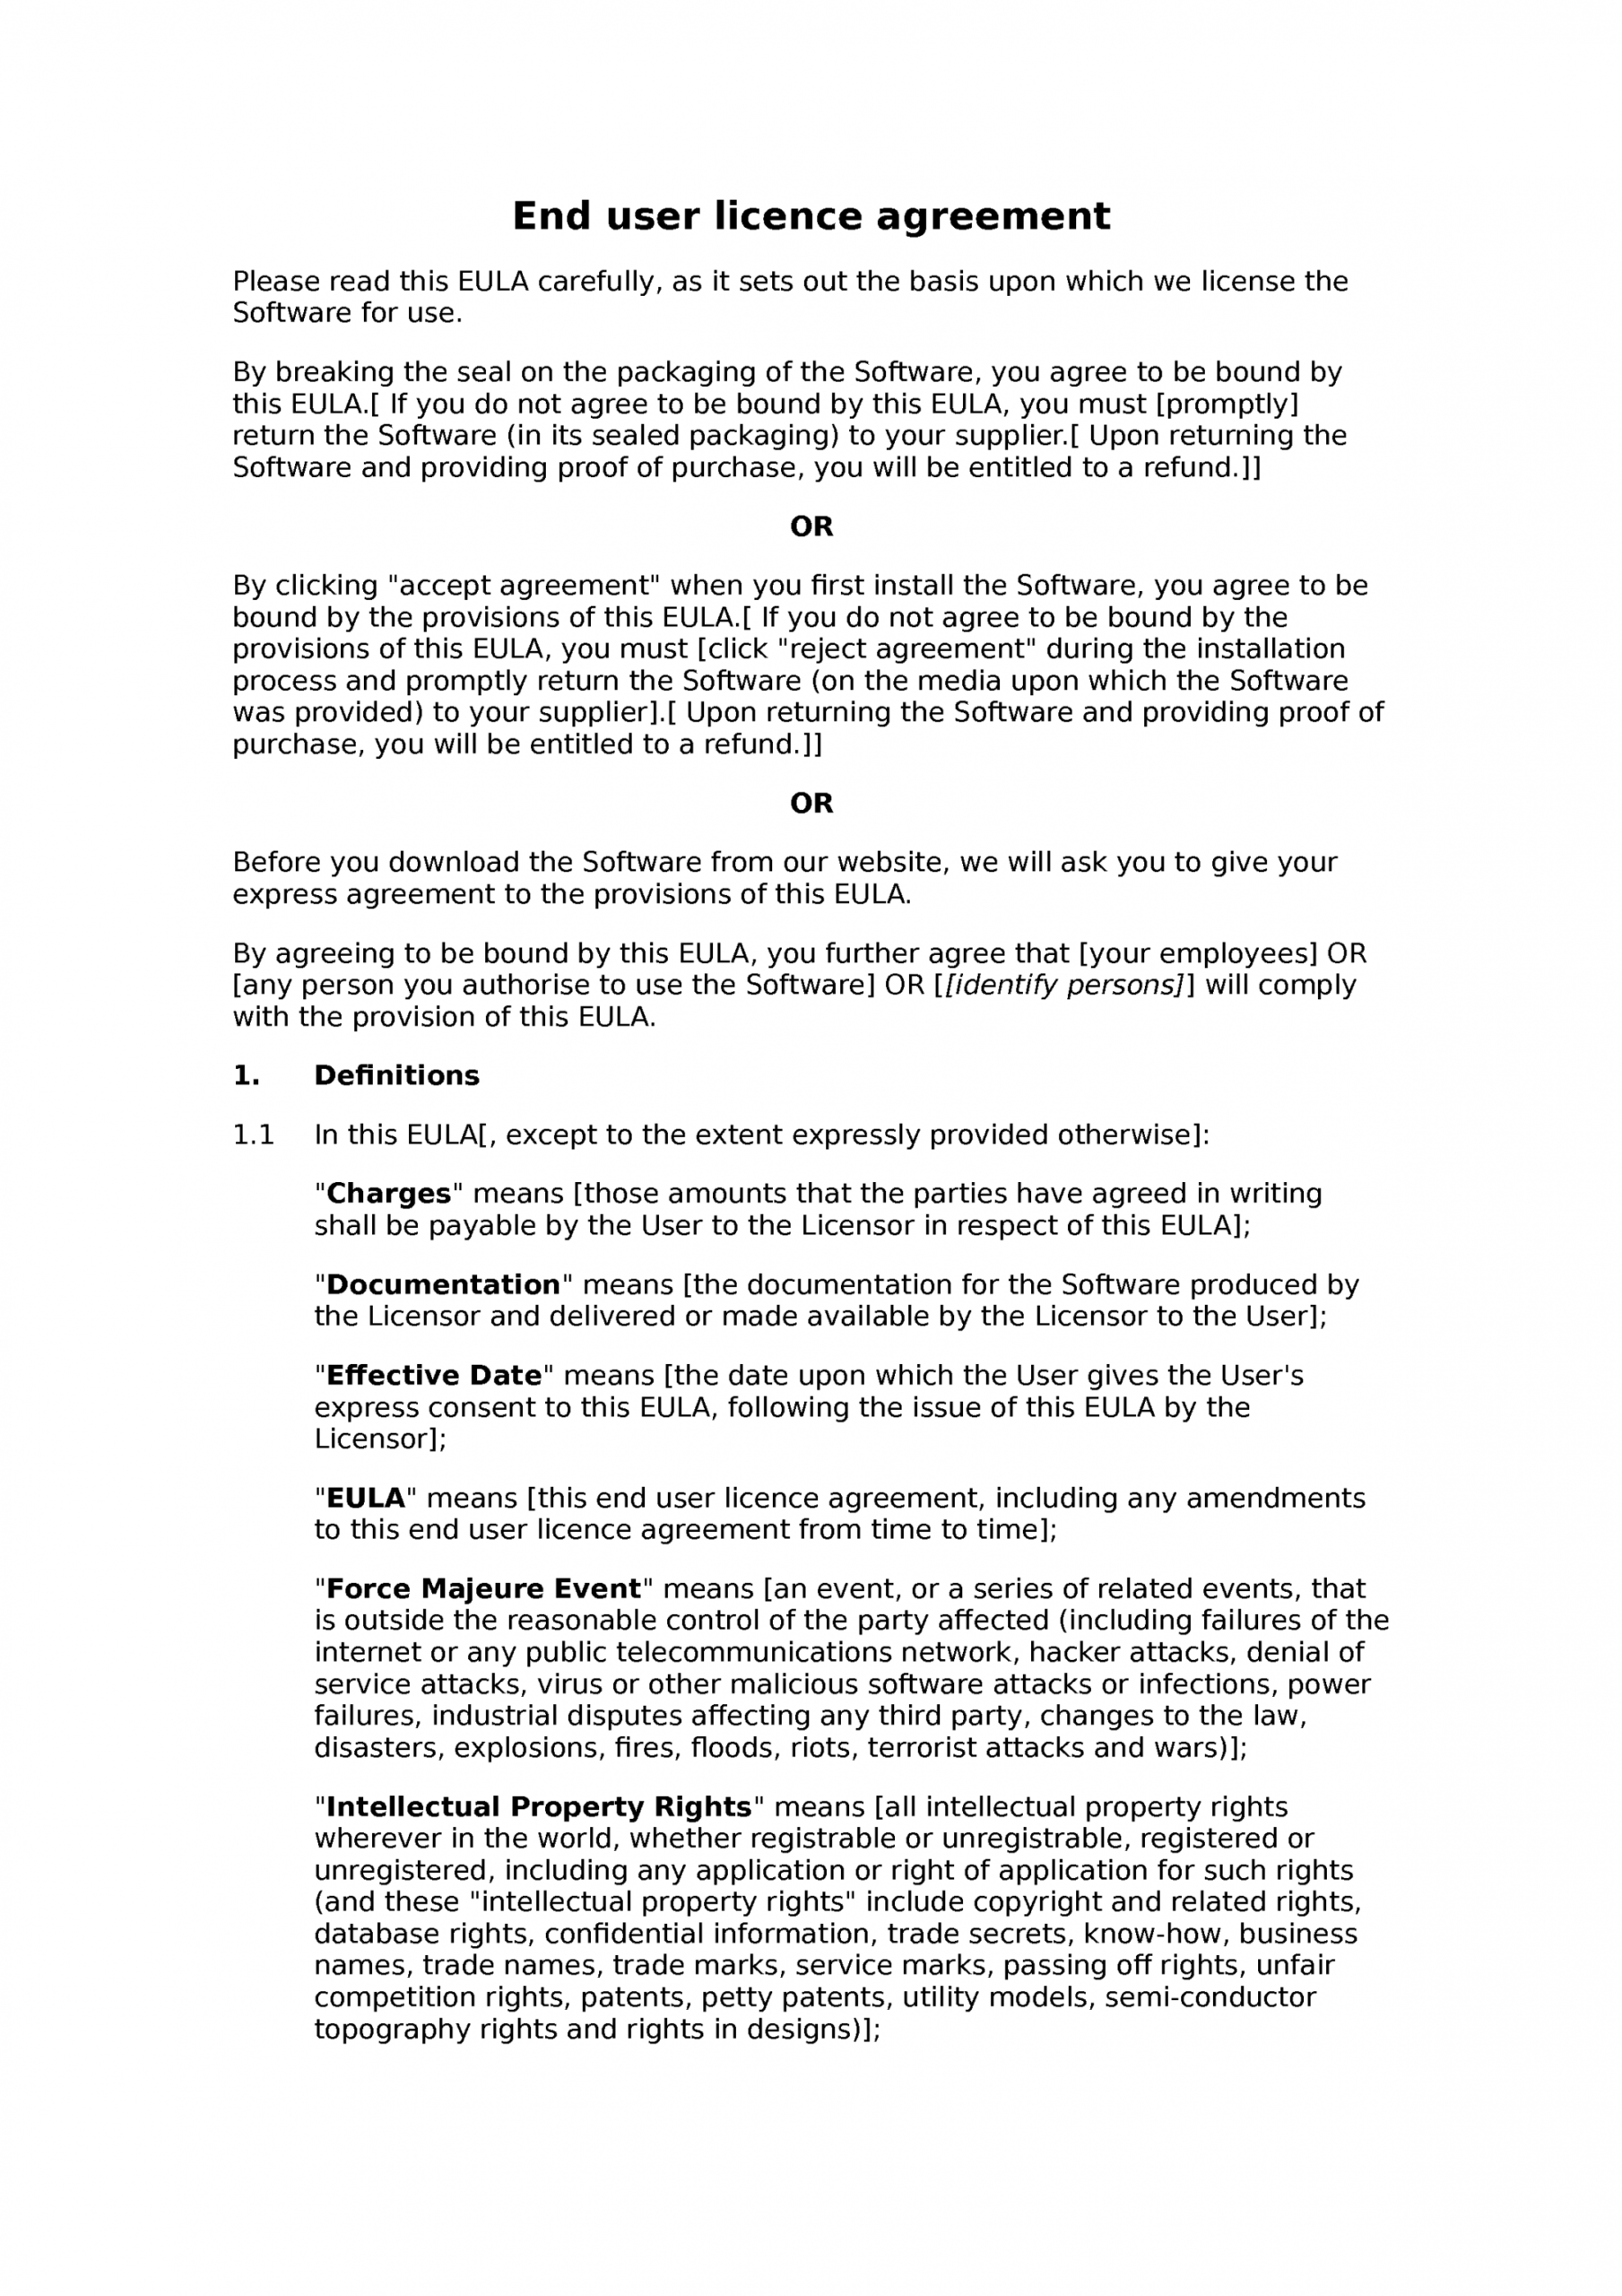 editable end user license agreement template   installation with end user license agreement template